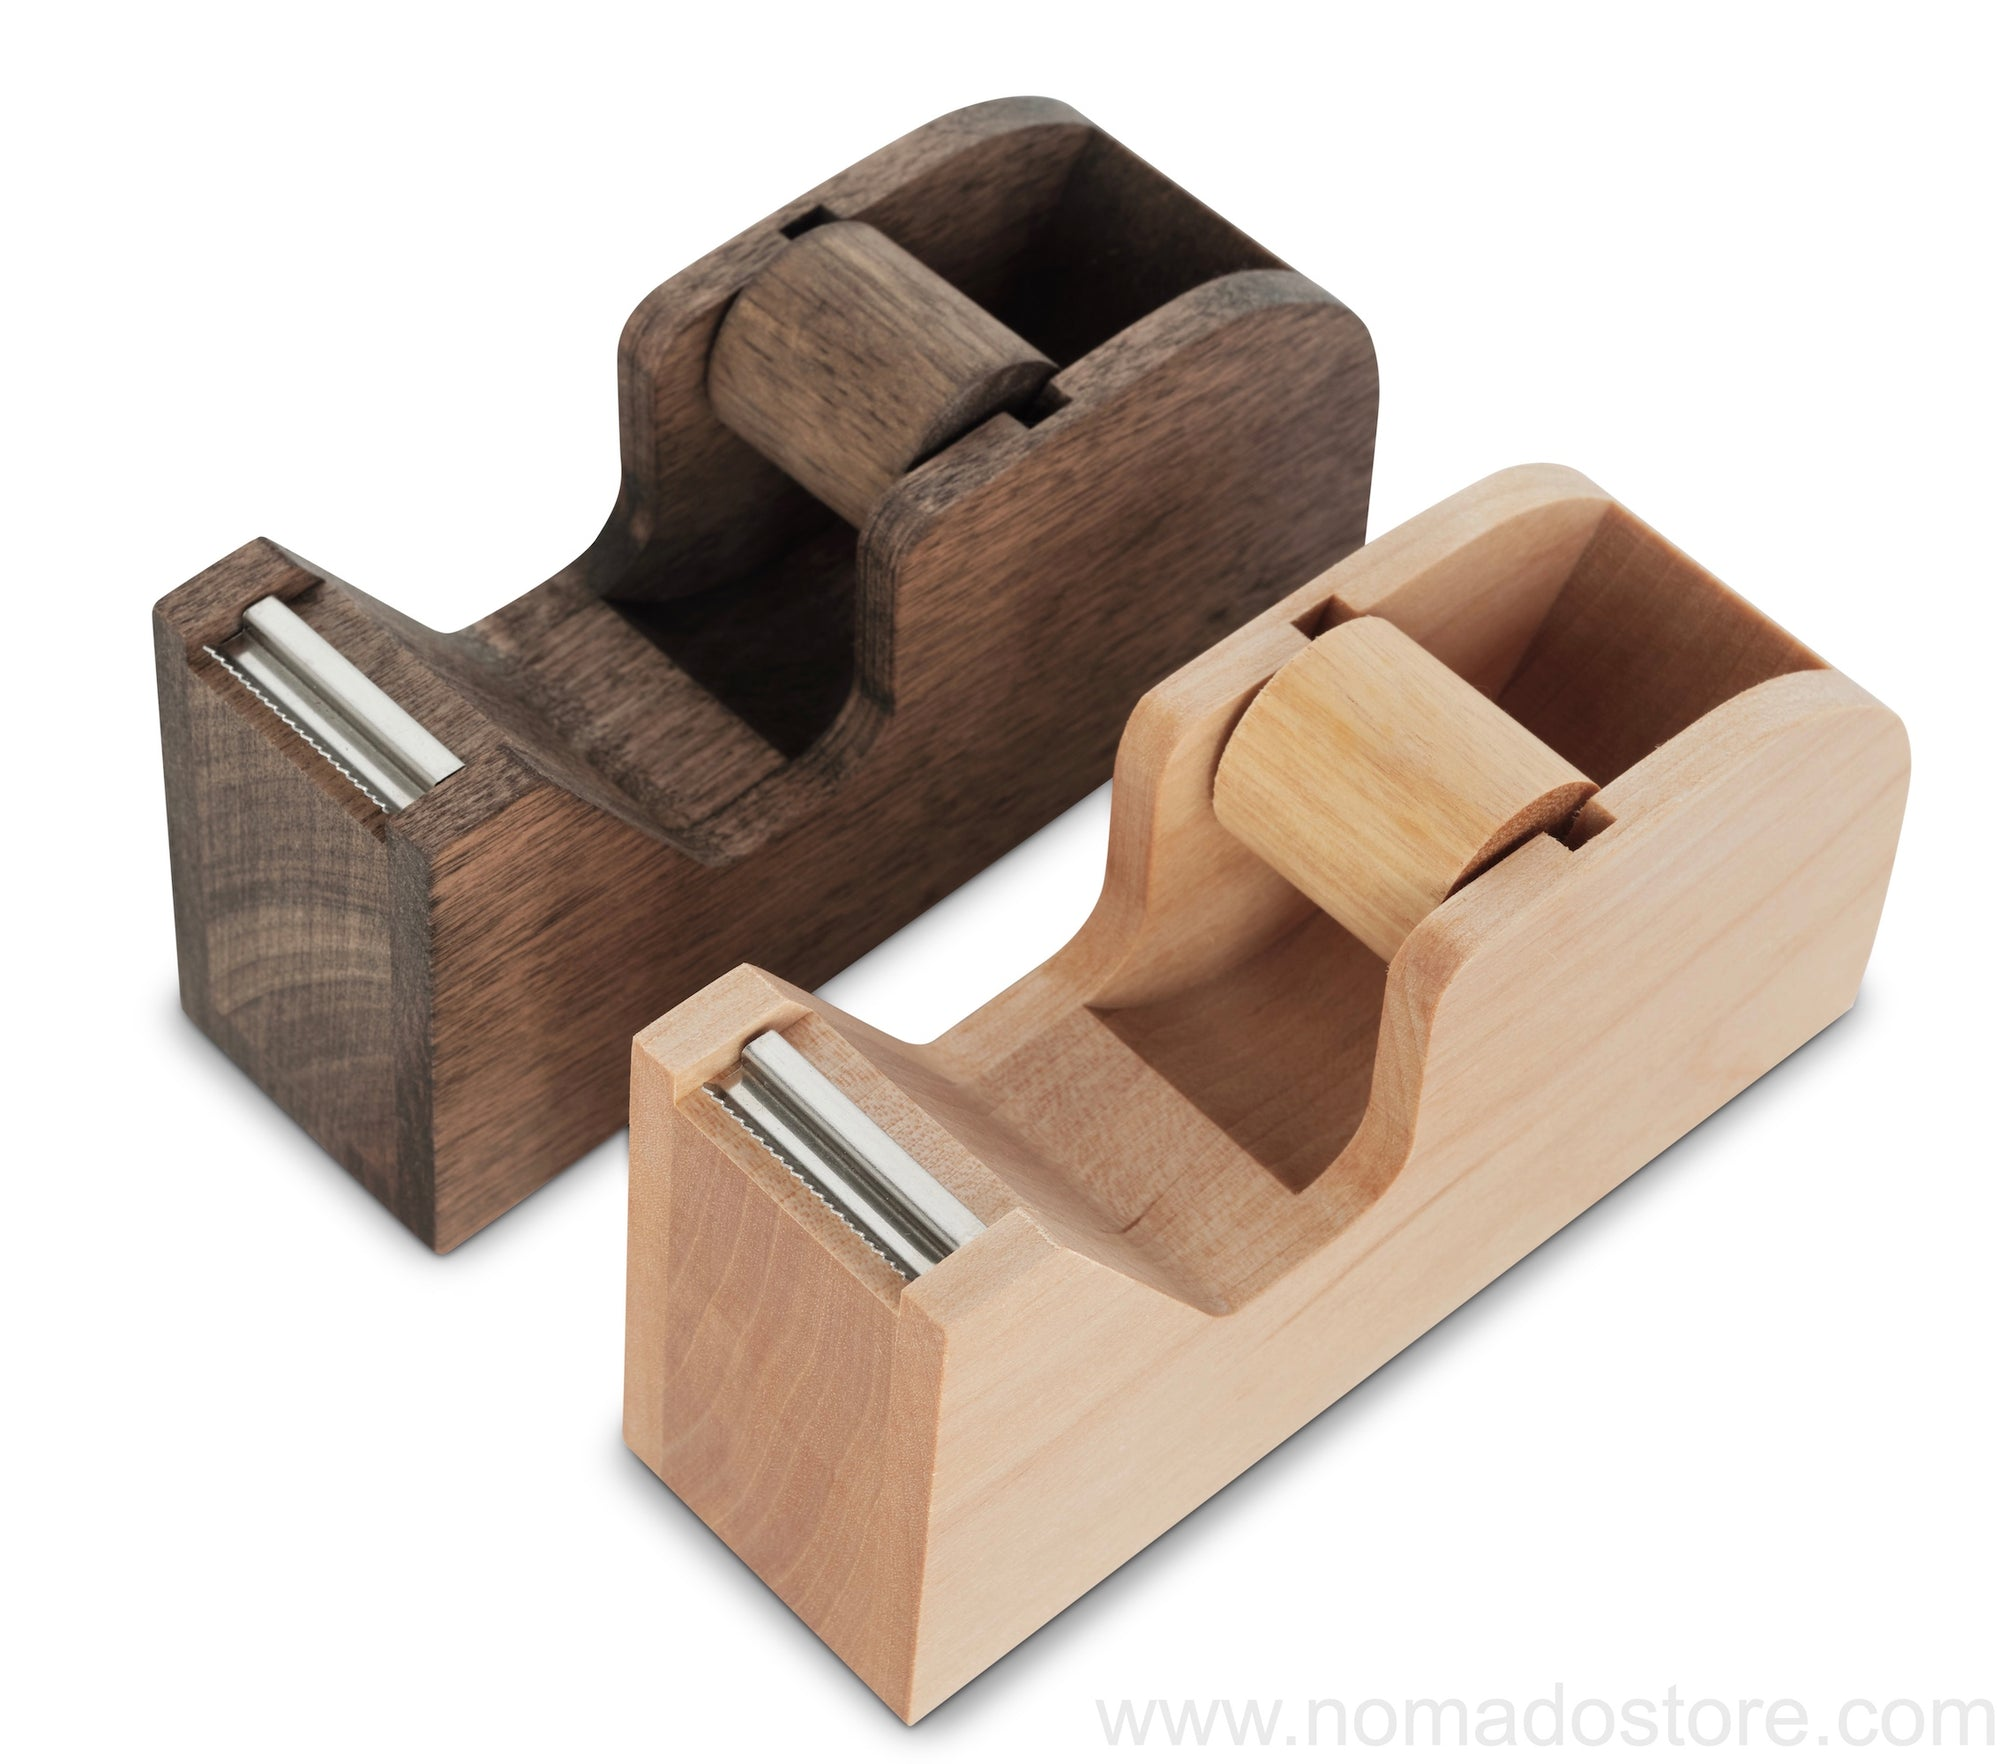 Classiky tape dispenser(wood) Natural or Brown - NOMADO Store